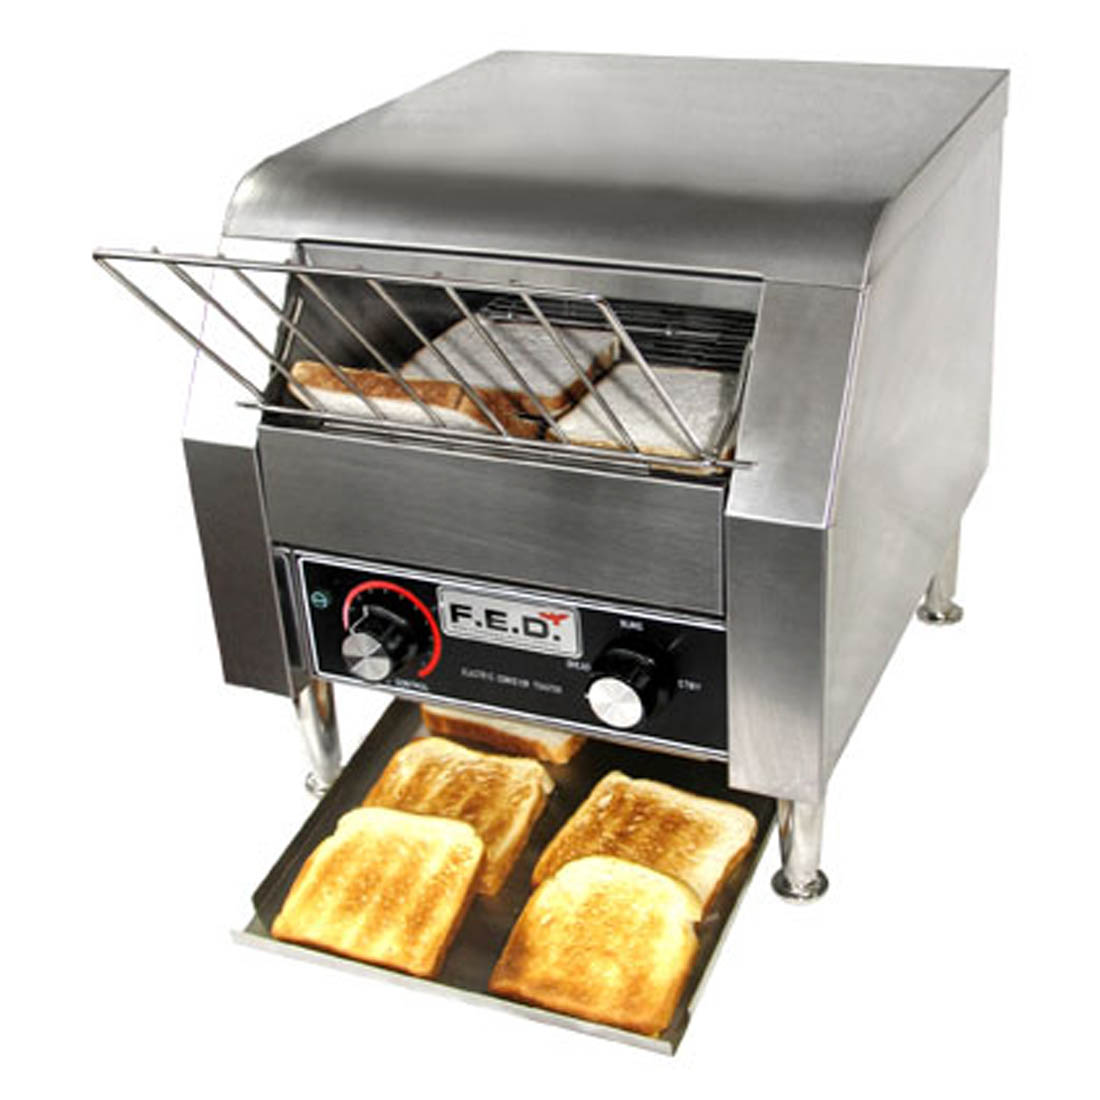 TT-300E Two Slice Conveyor Toaster